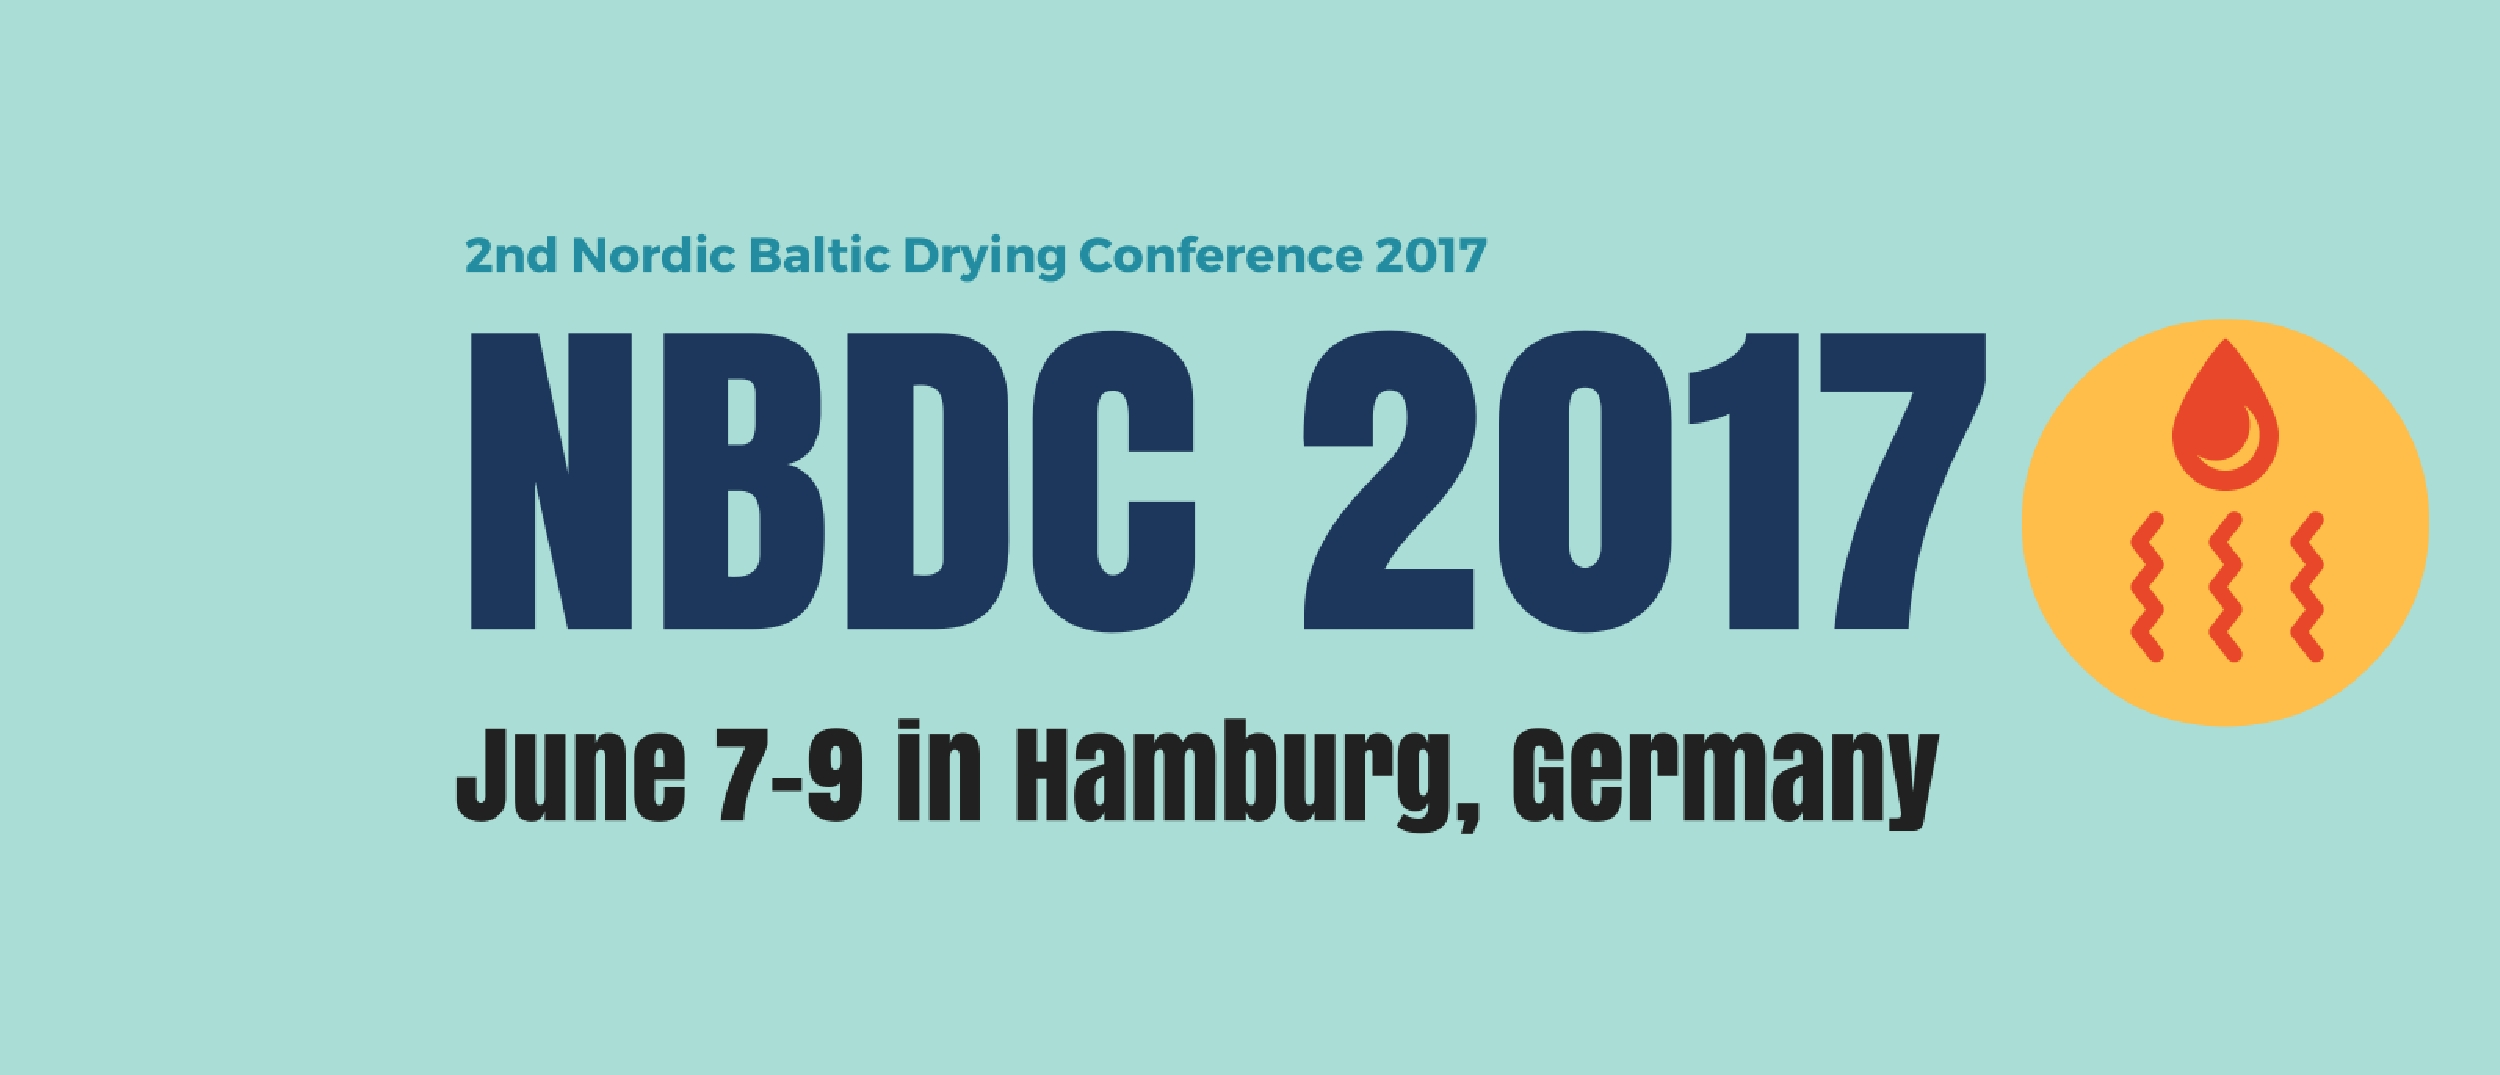 2nd Nordic Baltic Drying Conference 2017